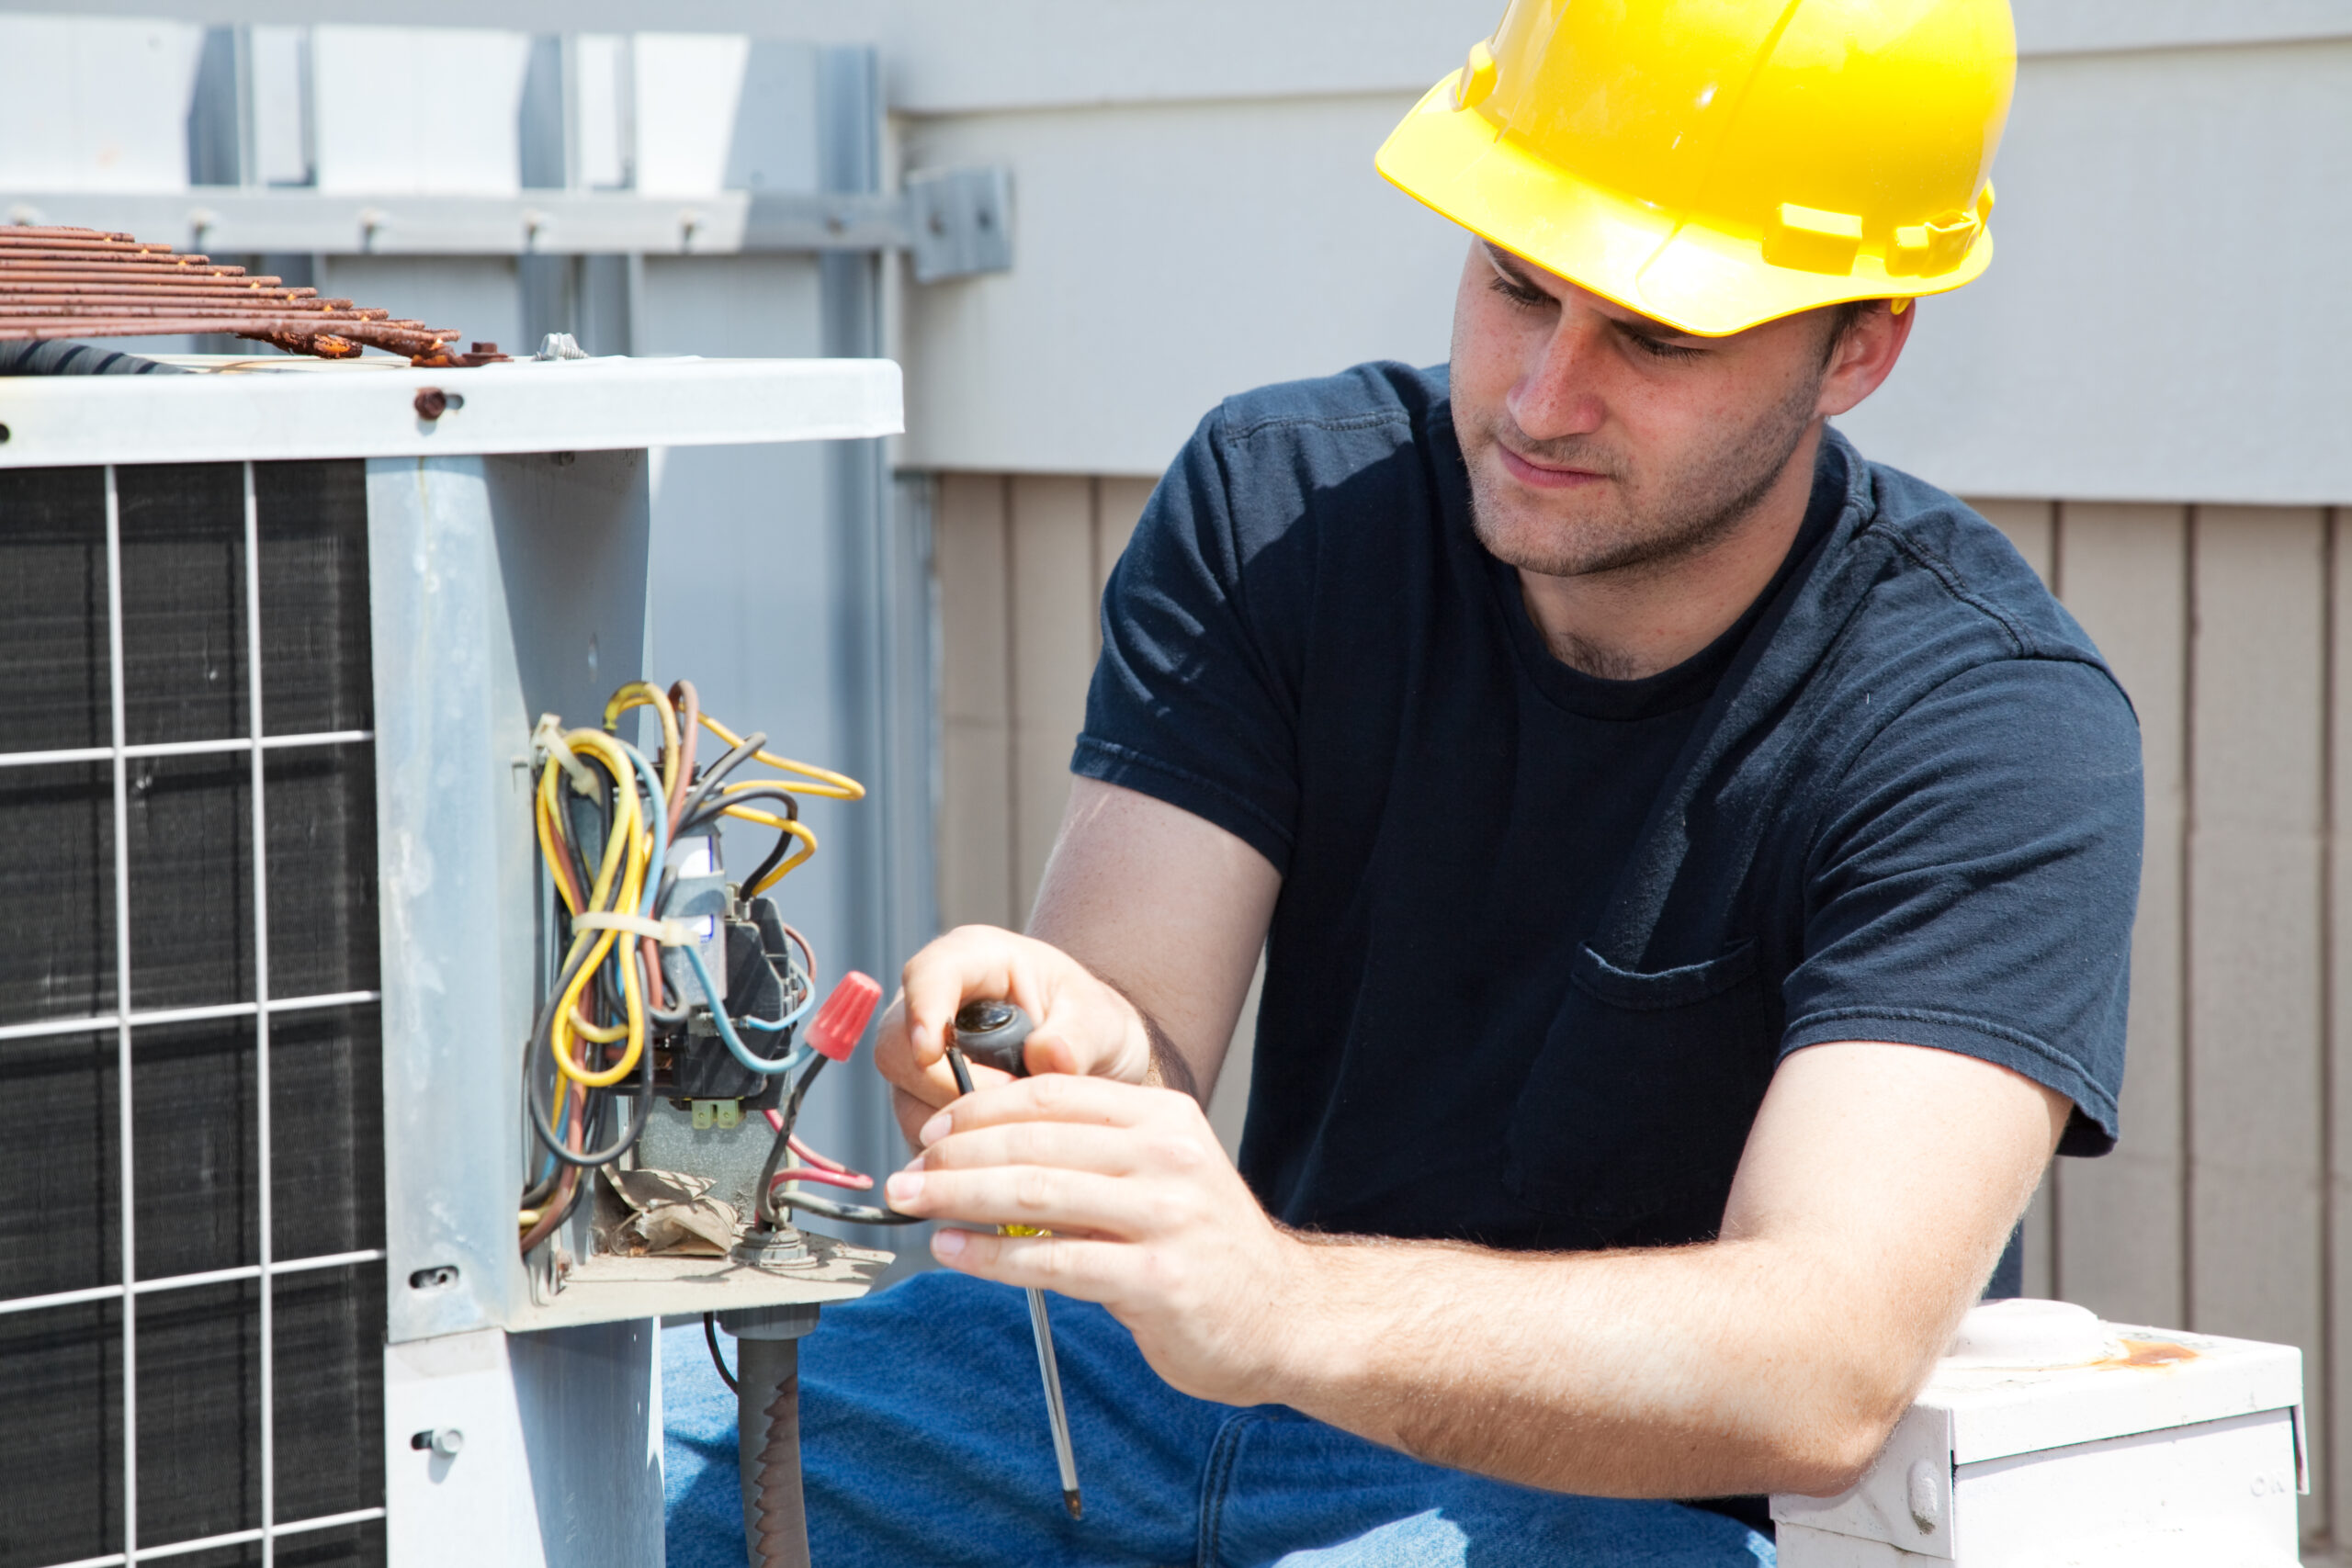 Man with Electrical Wires Stock